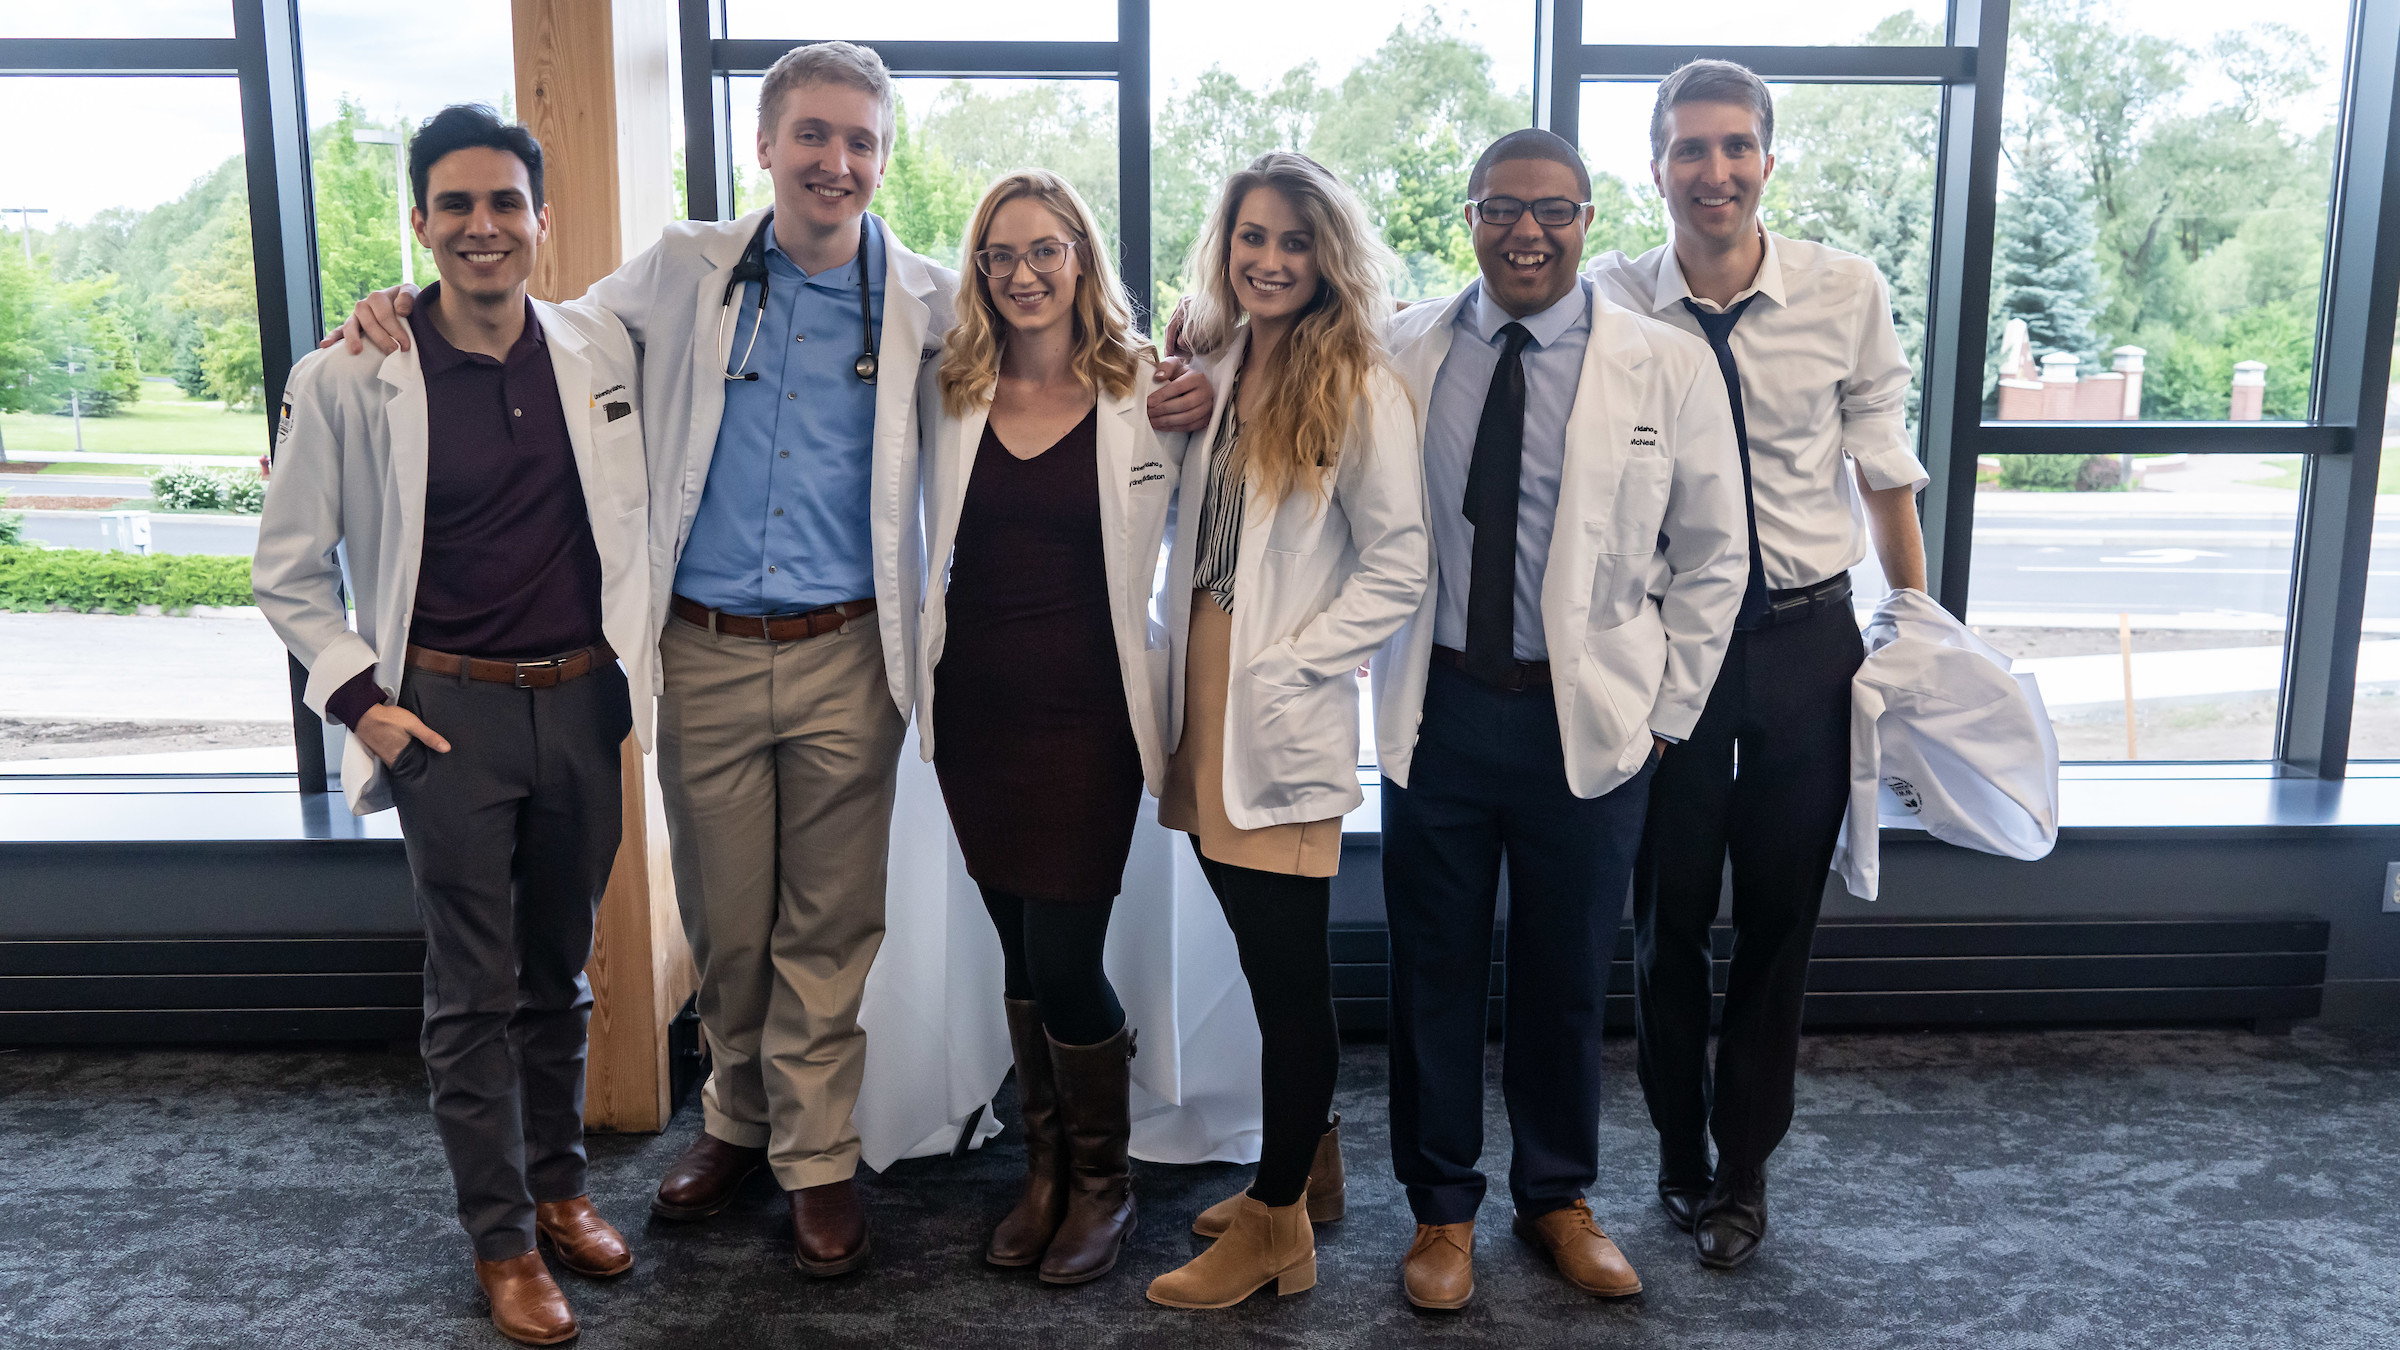 Medical students at the 2019 white coat ceremony reception.